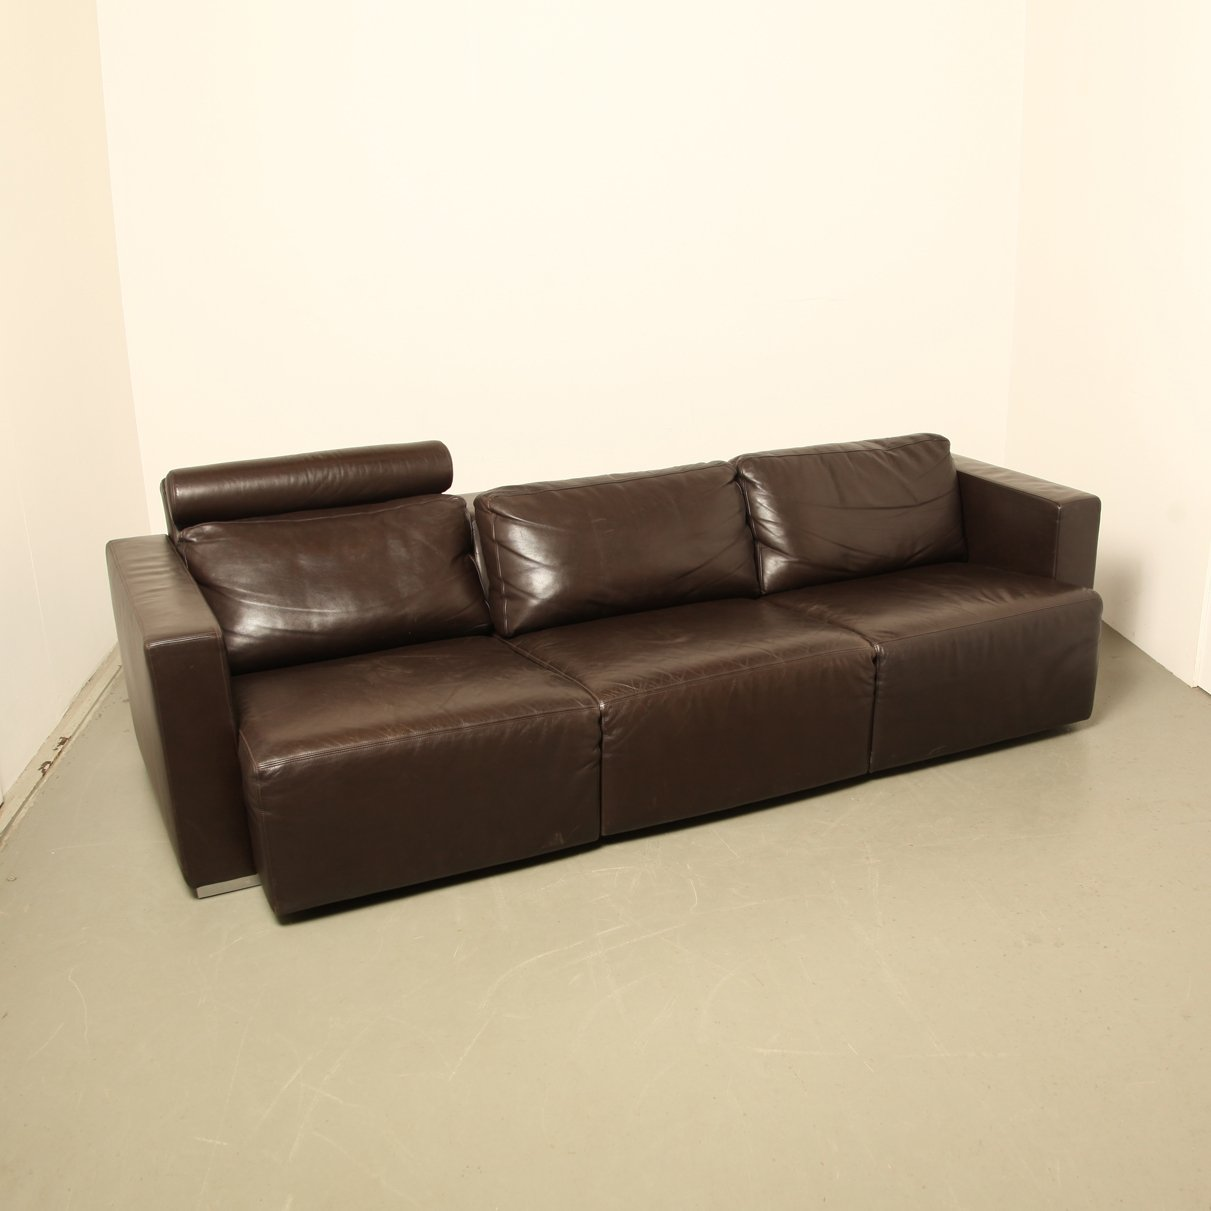 Walter Knoll Sofa Walter Knoll Sectional Brown Leather Sofa